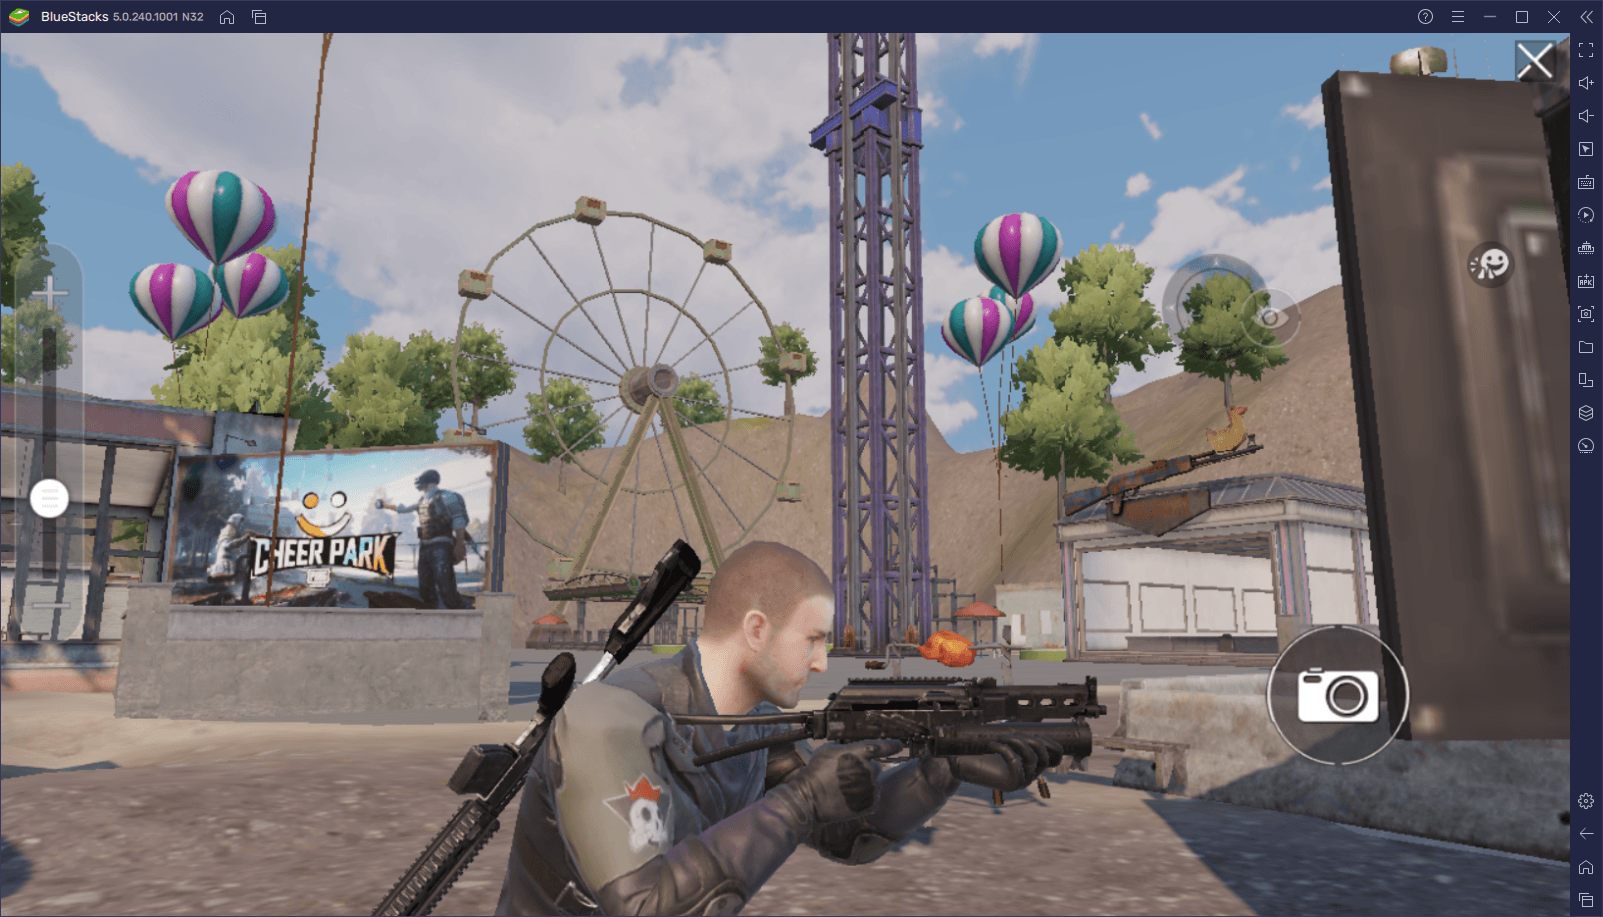 Battlegrounds Mobile India – Complete Weapon List of All the Firearms in the Game